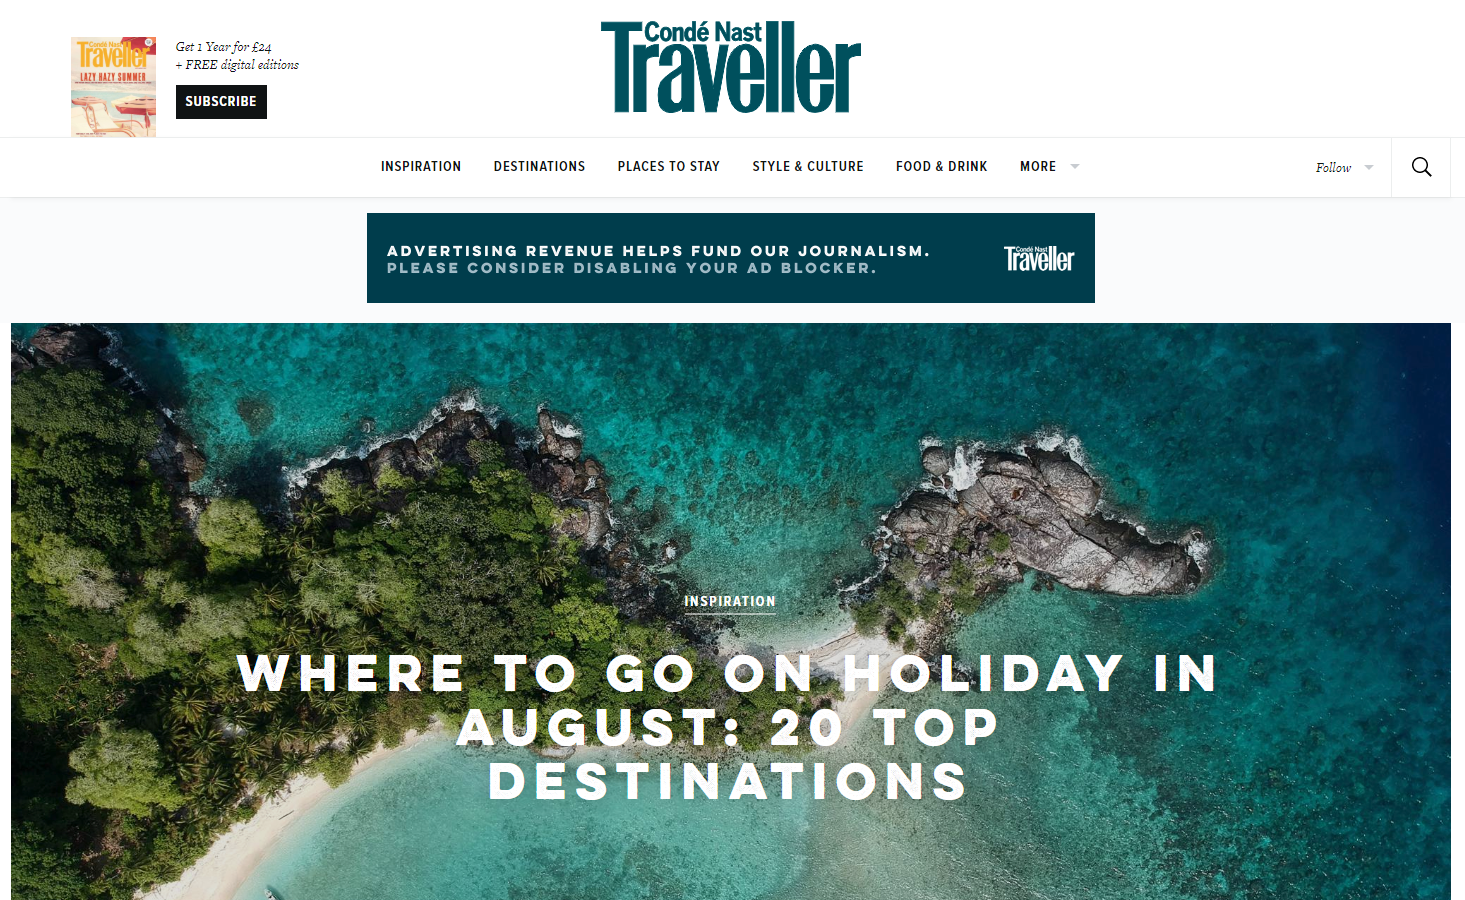 Travel news media sites like CNTraveller.com dropped by 18%.